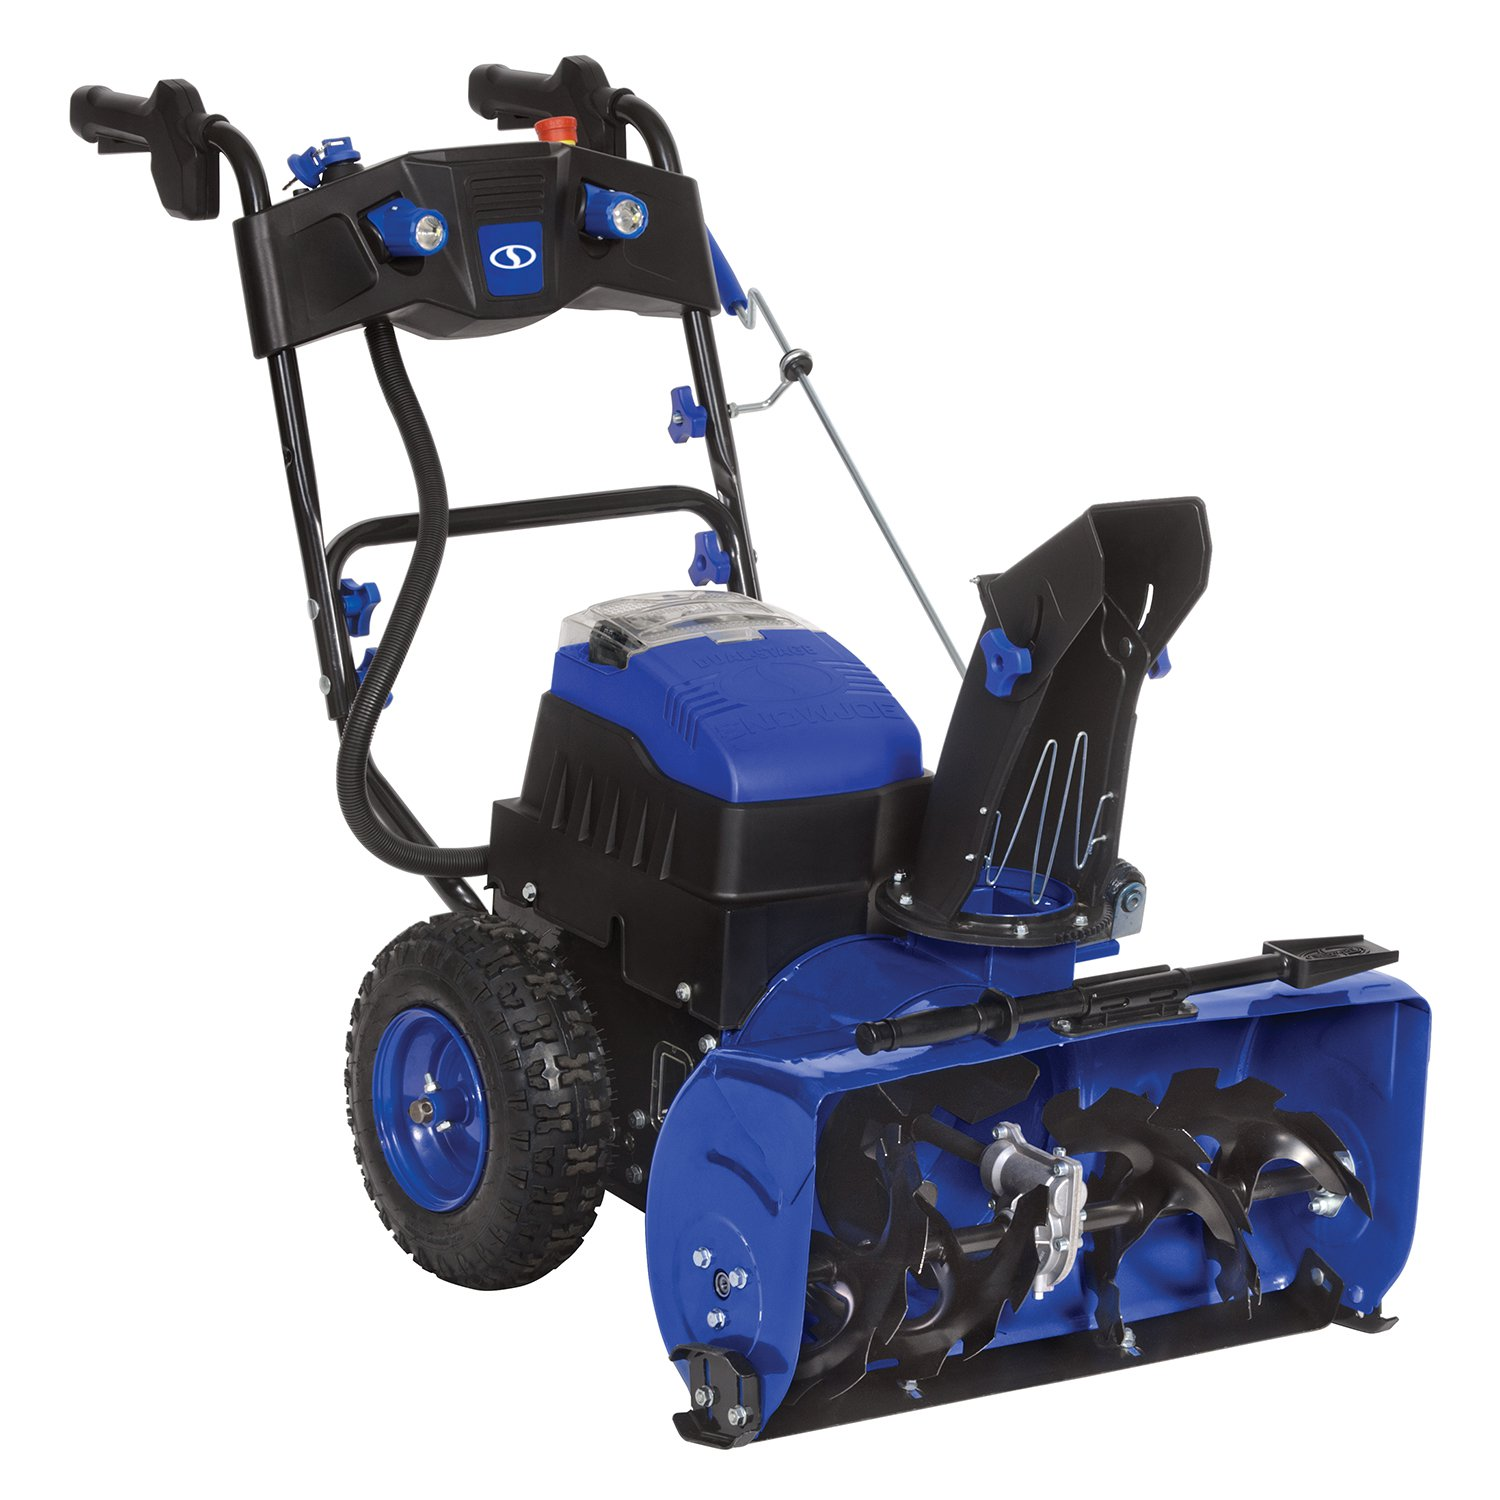 Snow Joe iON Self-Propelled 3 Speed 24 Inch Cordless Snow Blower (Tool Only) by Snow Joe